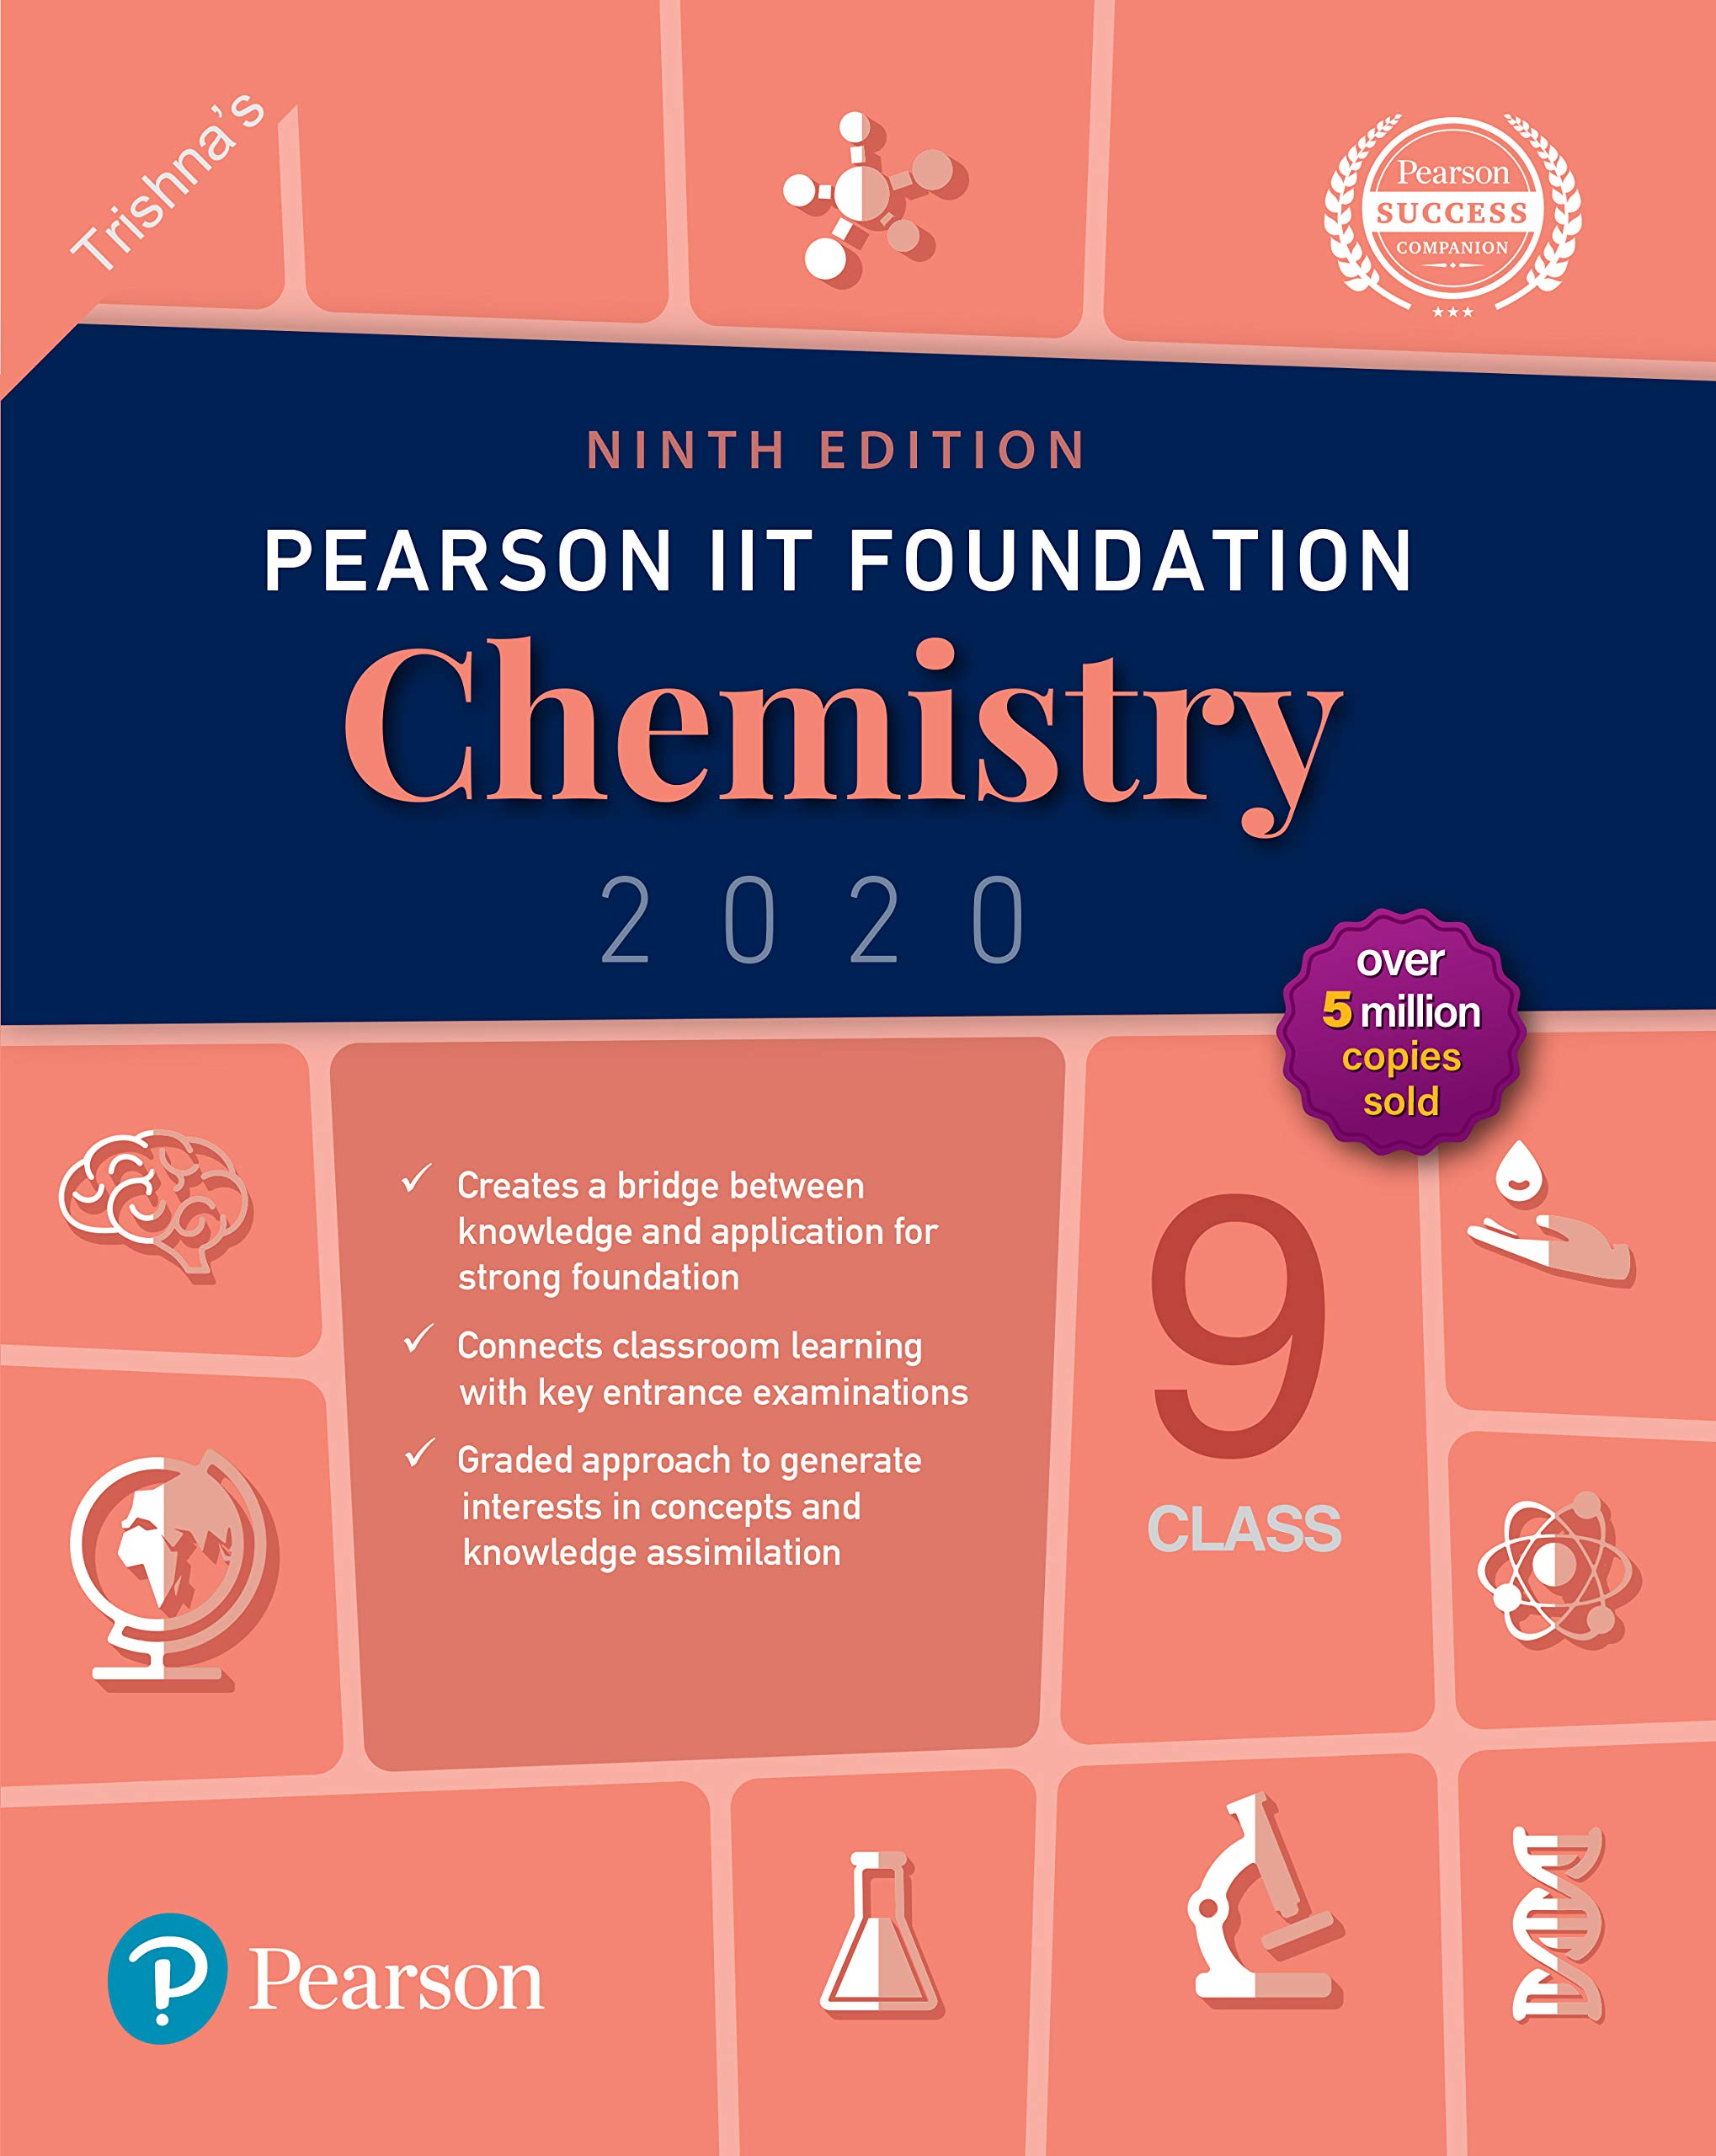 Pearson IIT Foundation Series Class 9 Chemistry|2020 Edition|By Pearson